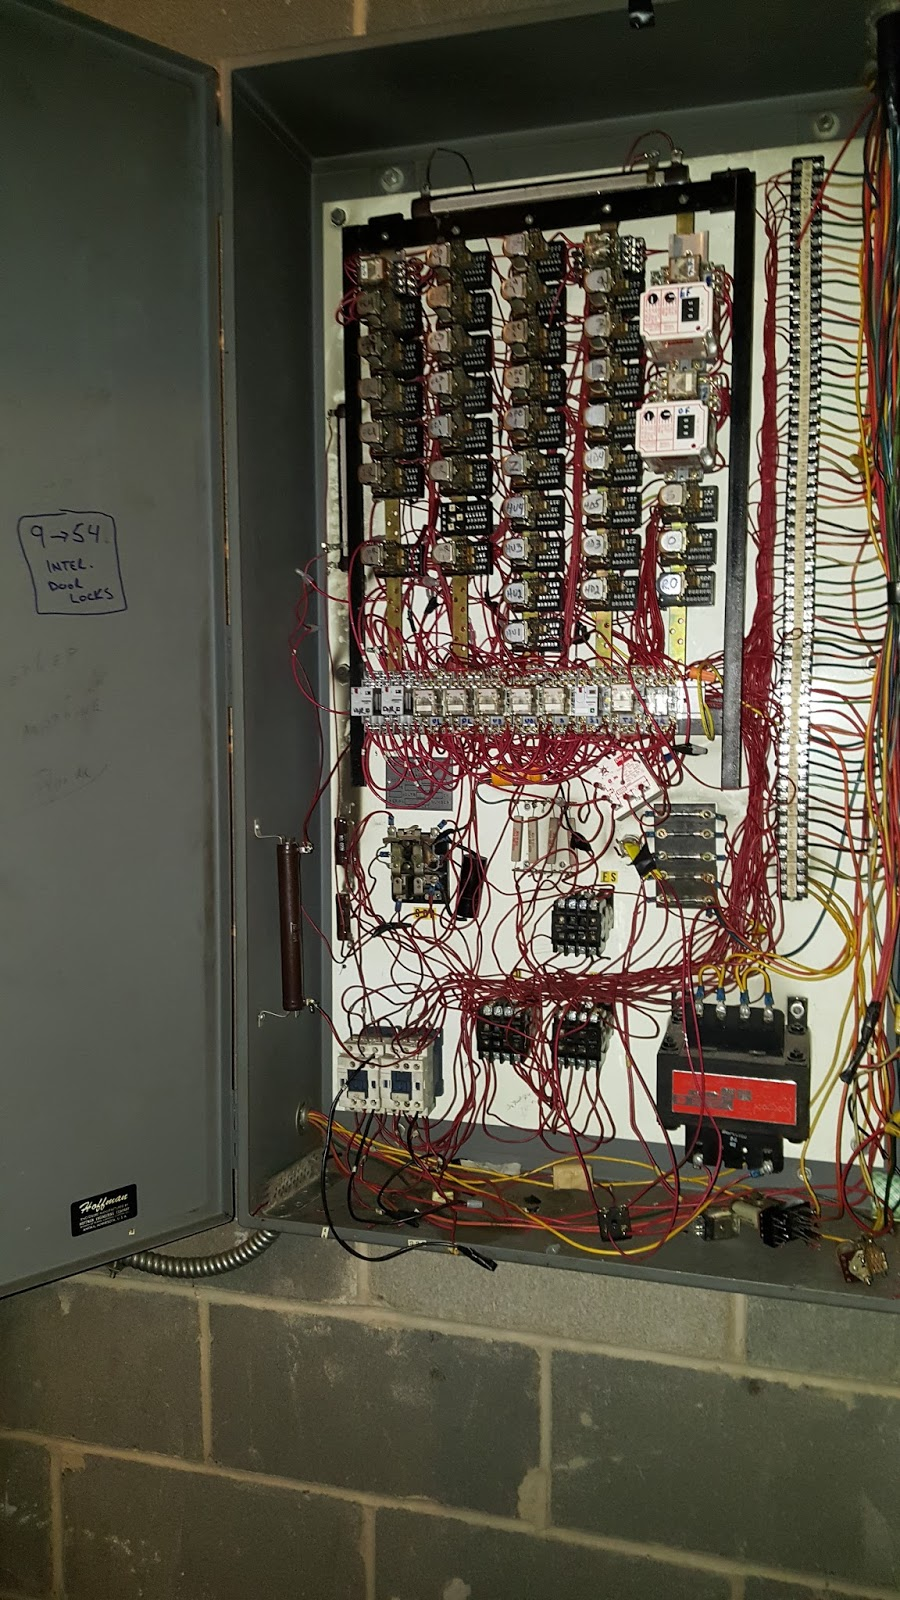 [Old control system was kept together with paper clips and bubblegum]